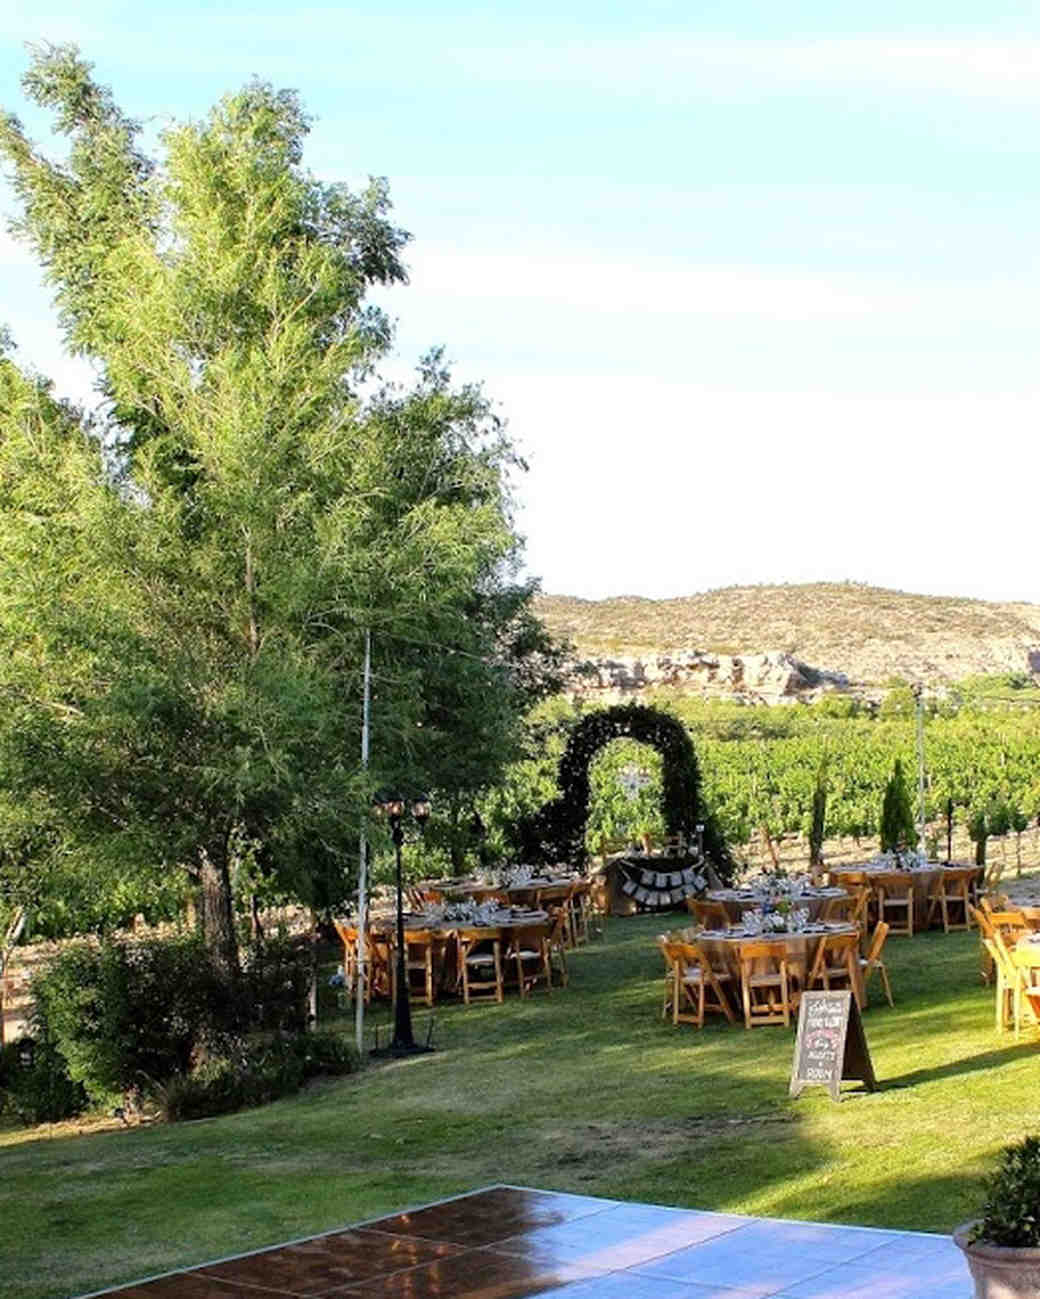 vineyard-wedding-venues-alcantara-vineyards-winery-0714.jpg